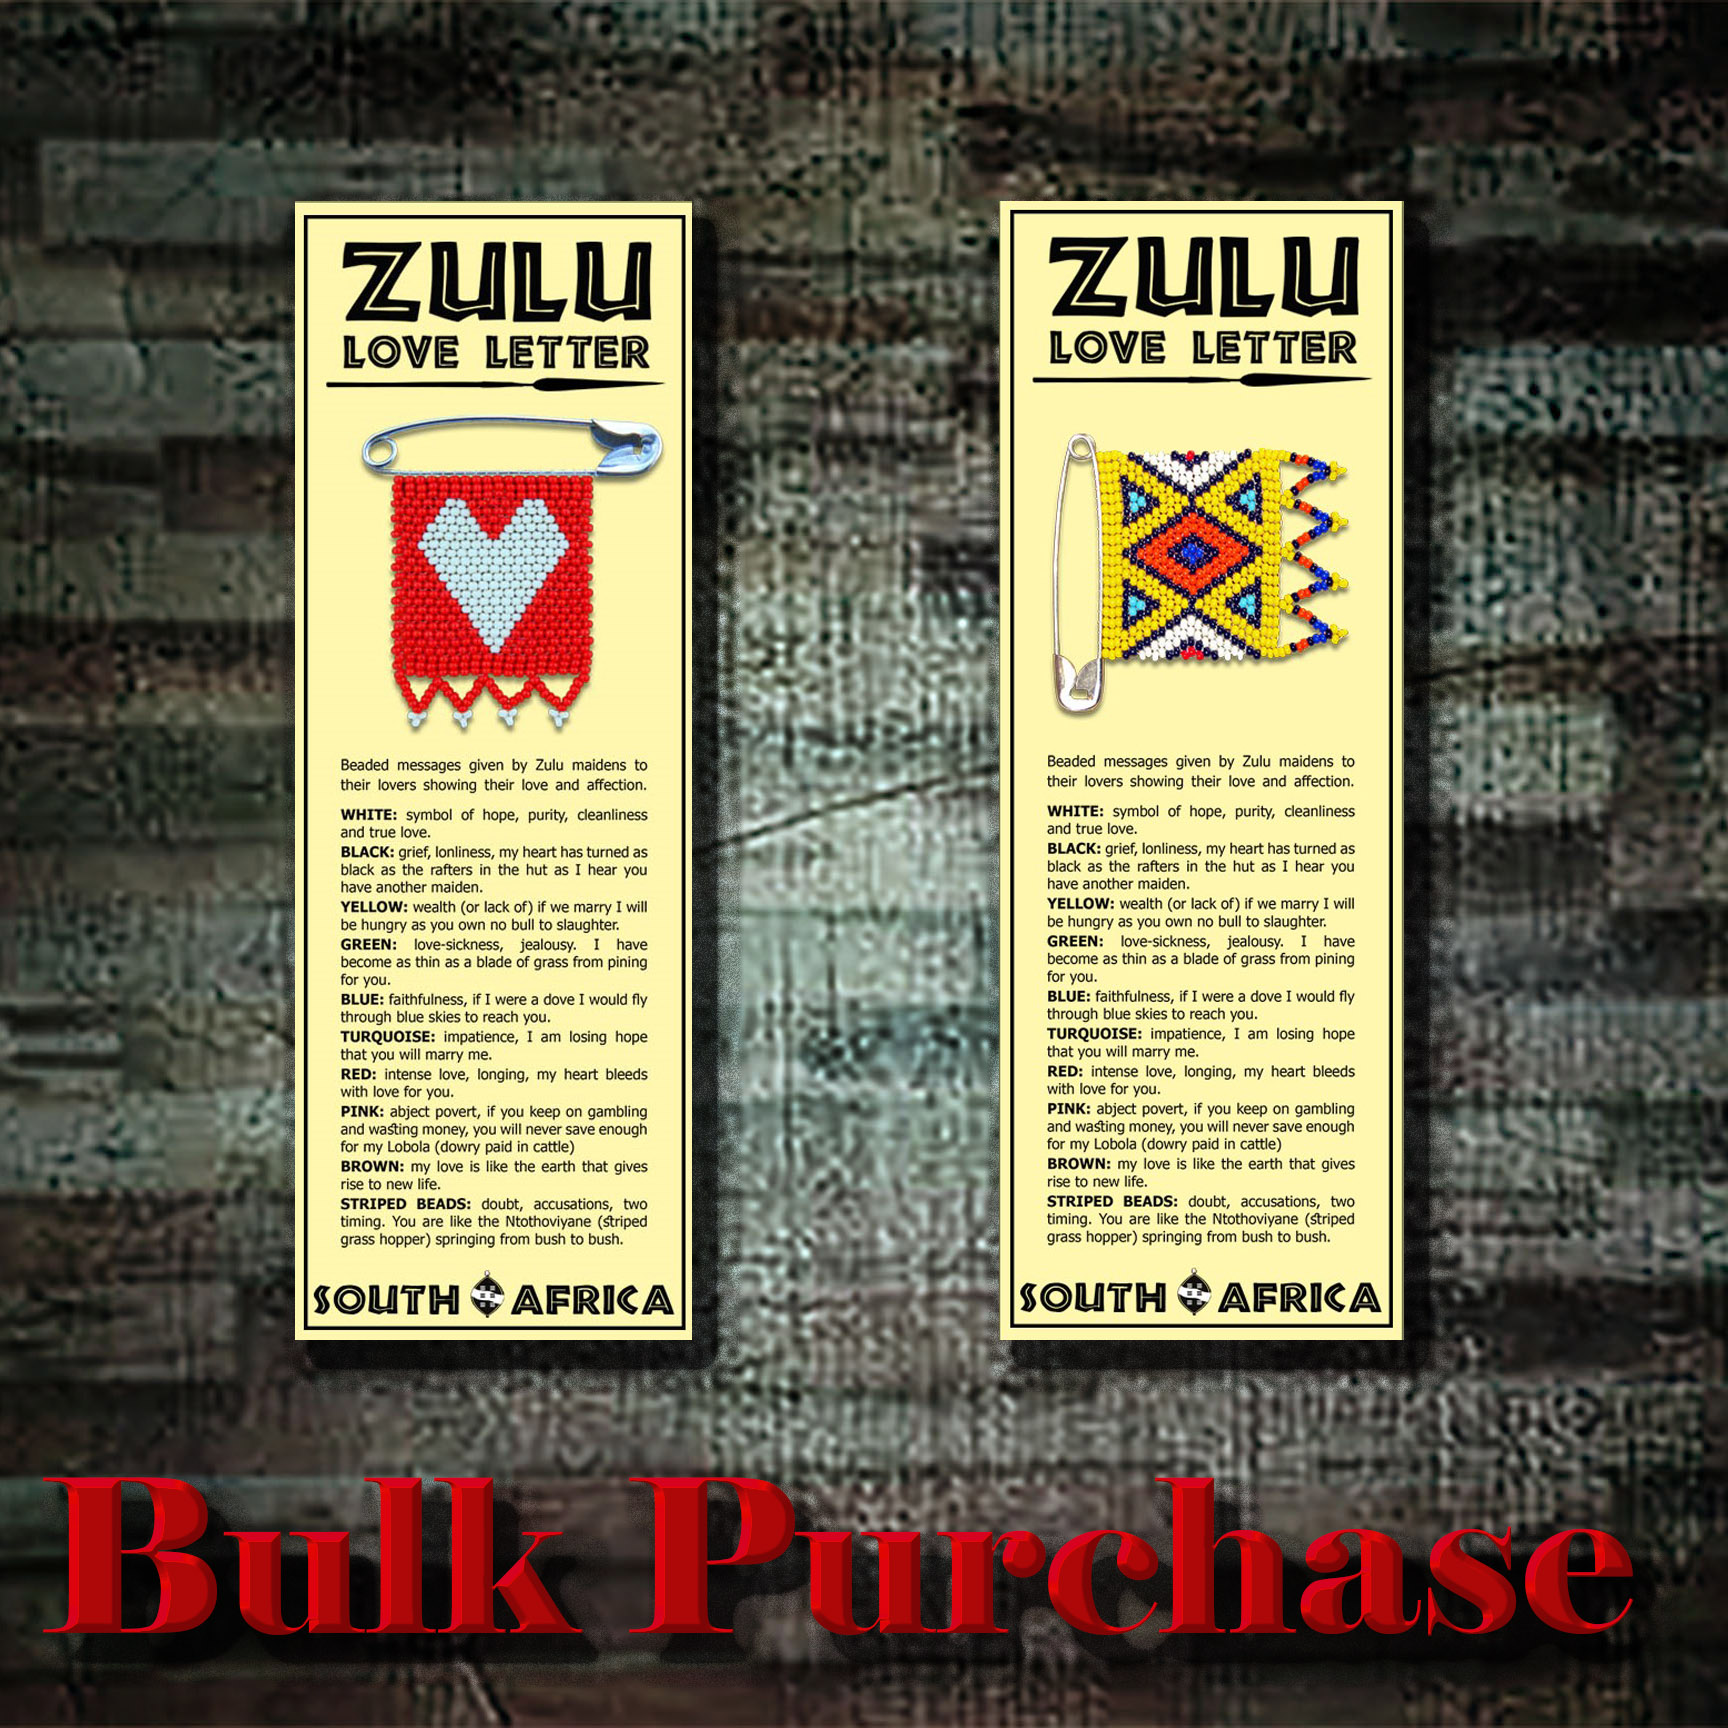 Y9 Zulu Love Letter Bookmarks (Bulk Purchase)